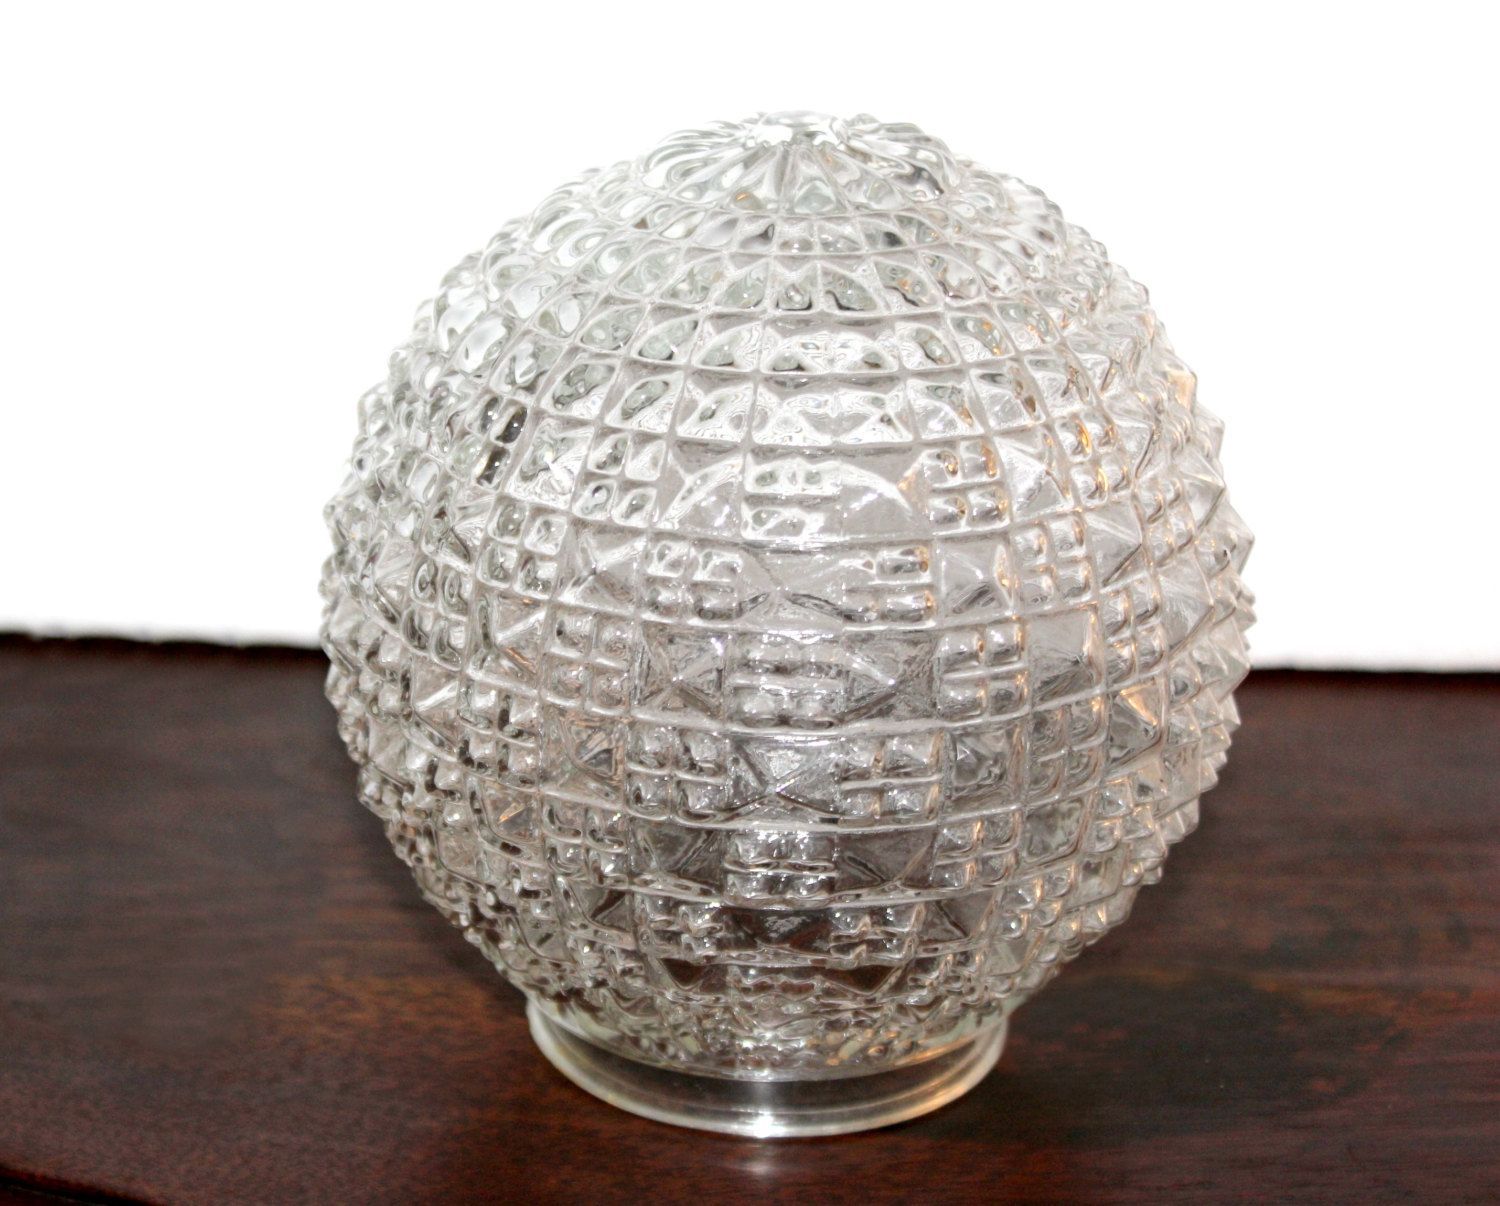 Replacement Glass Light Shades For Light Fixtures: Antique Glass Globe Replacement Diamond Point, Hobnail